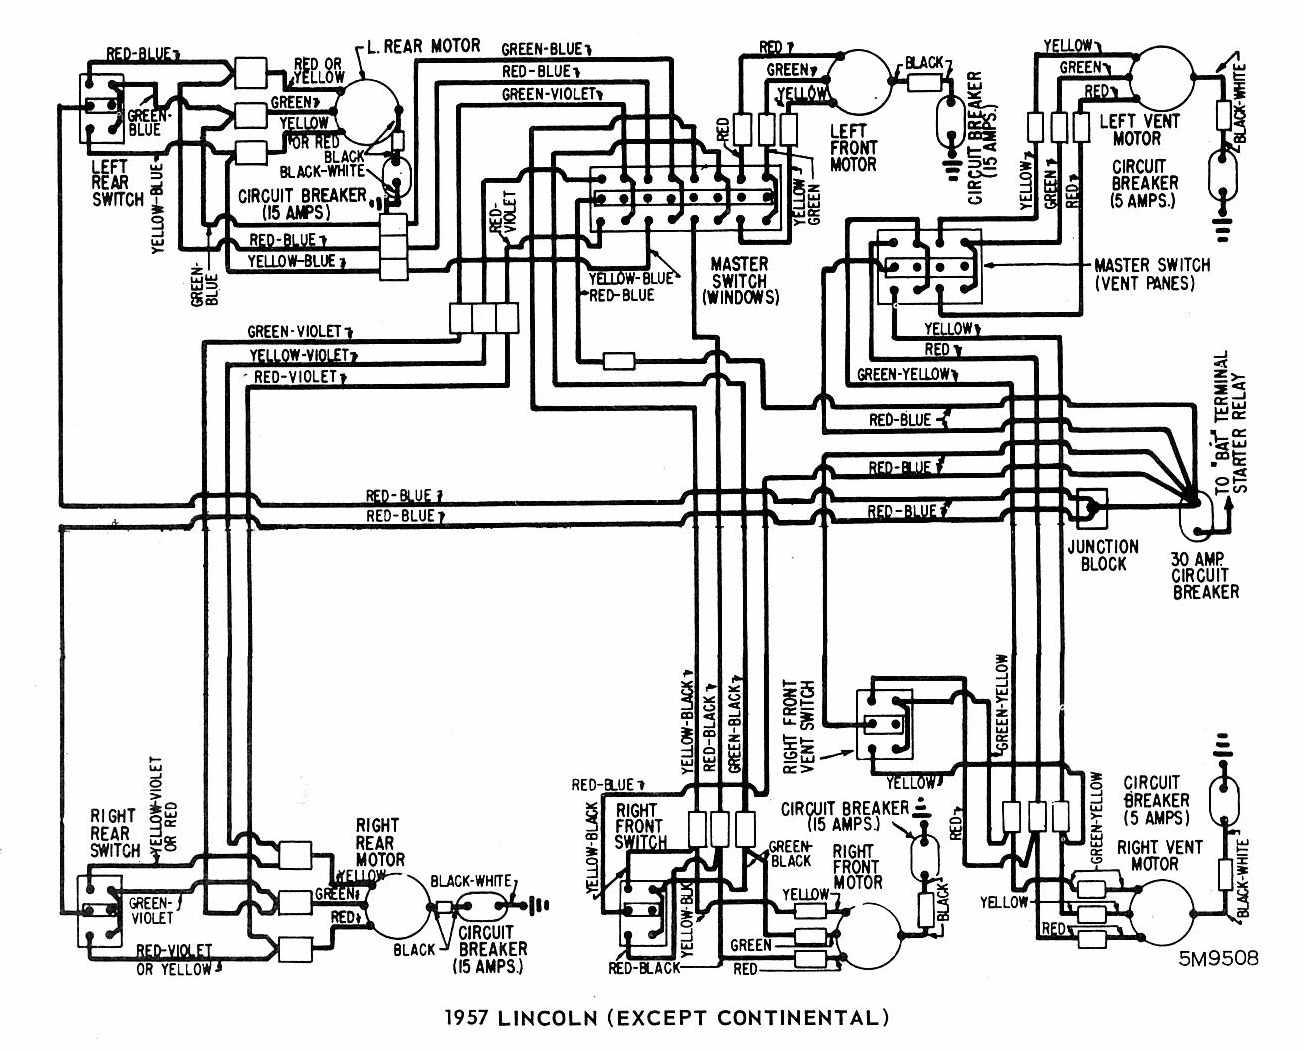 lincoln lights wiring diagram christmas lights wiring diagram lincoln (except continental) 1957 windows wiring diagram ... #9